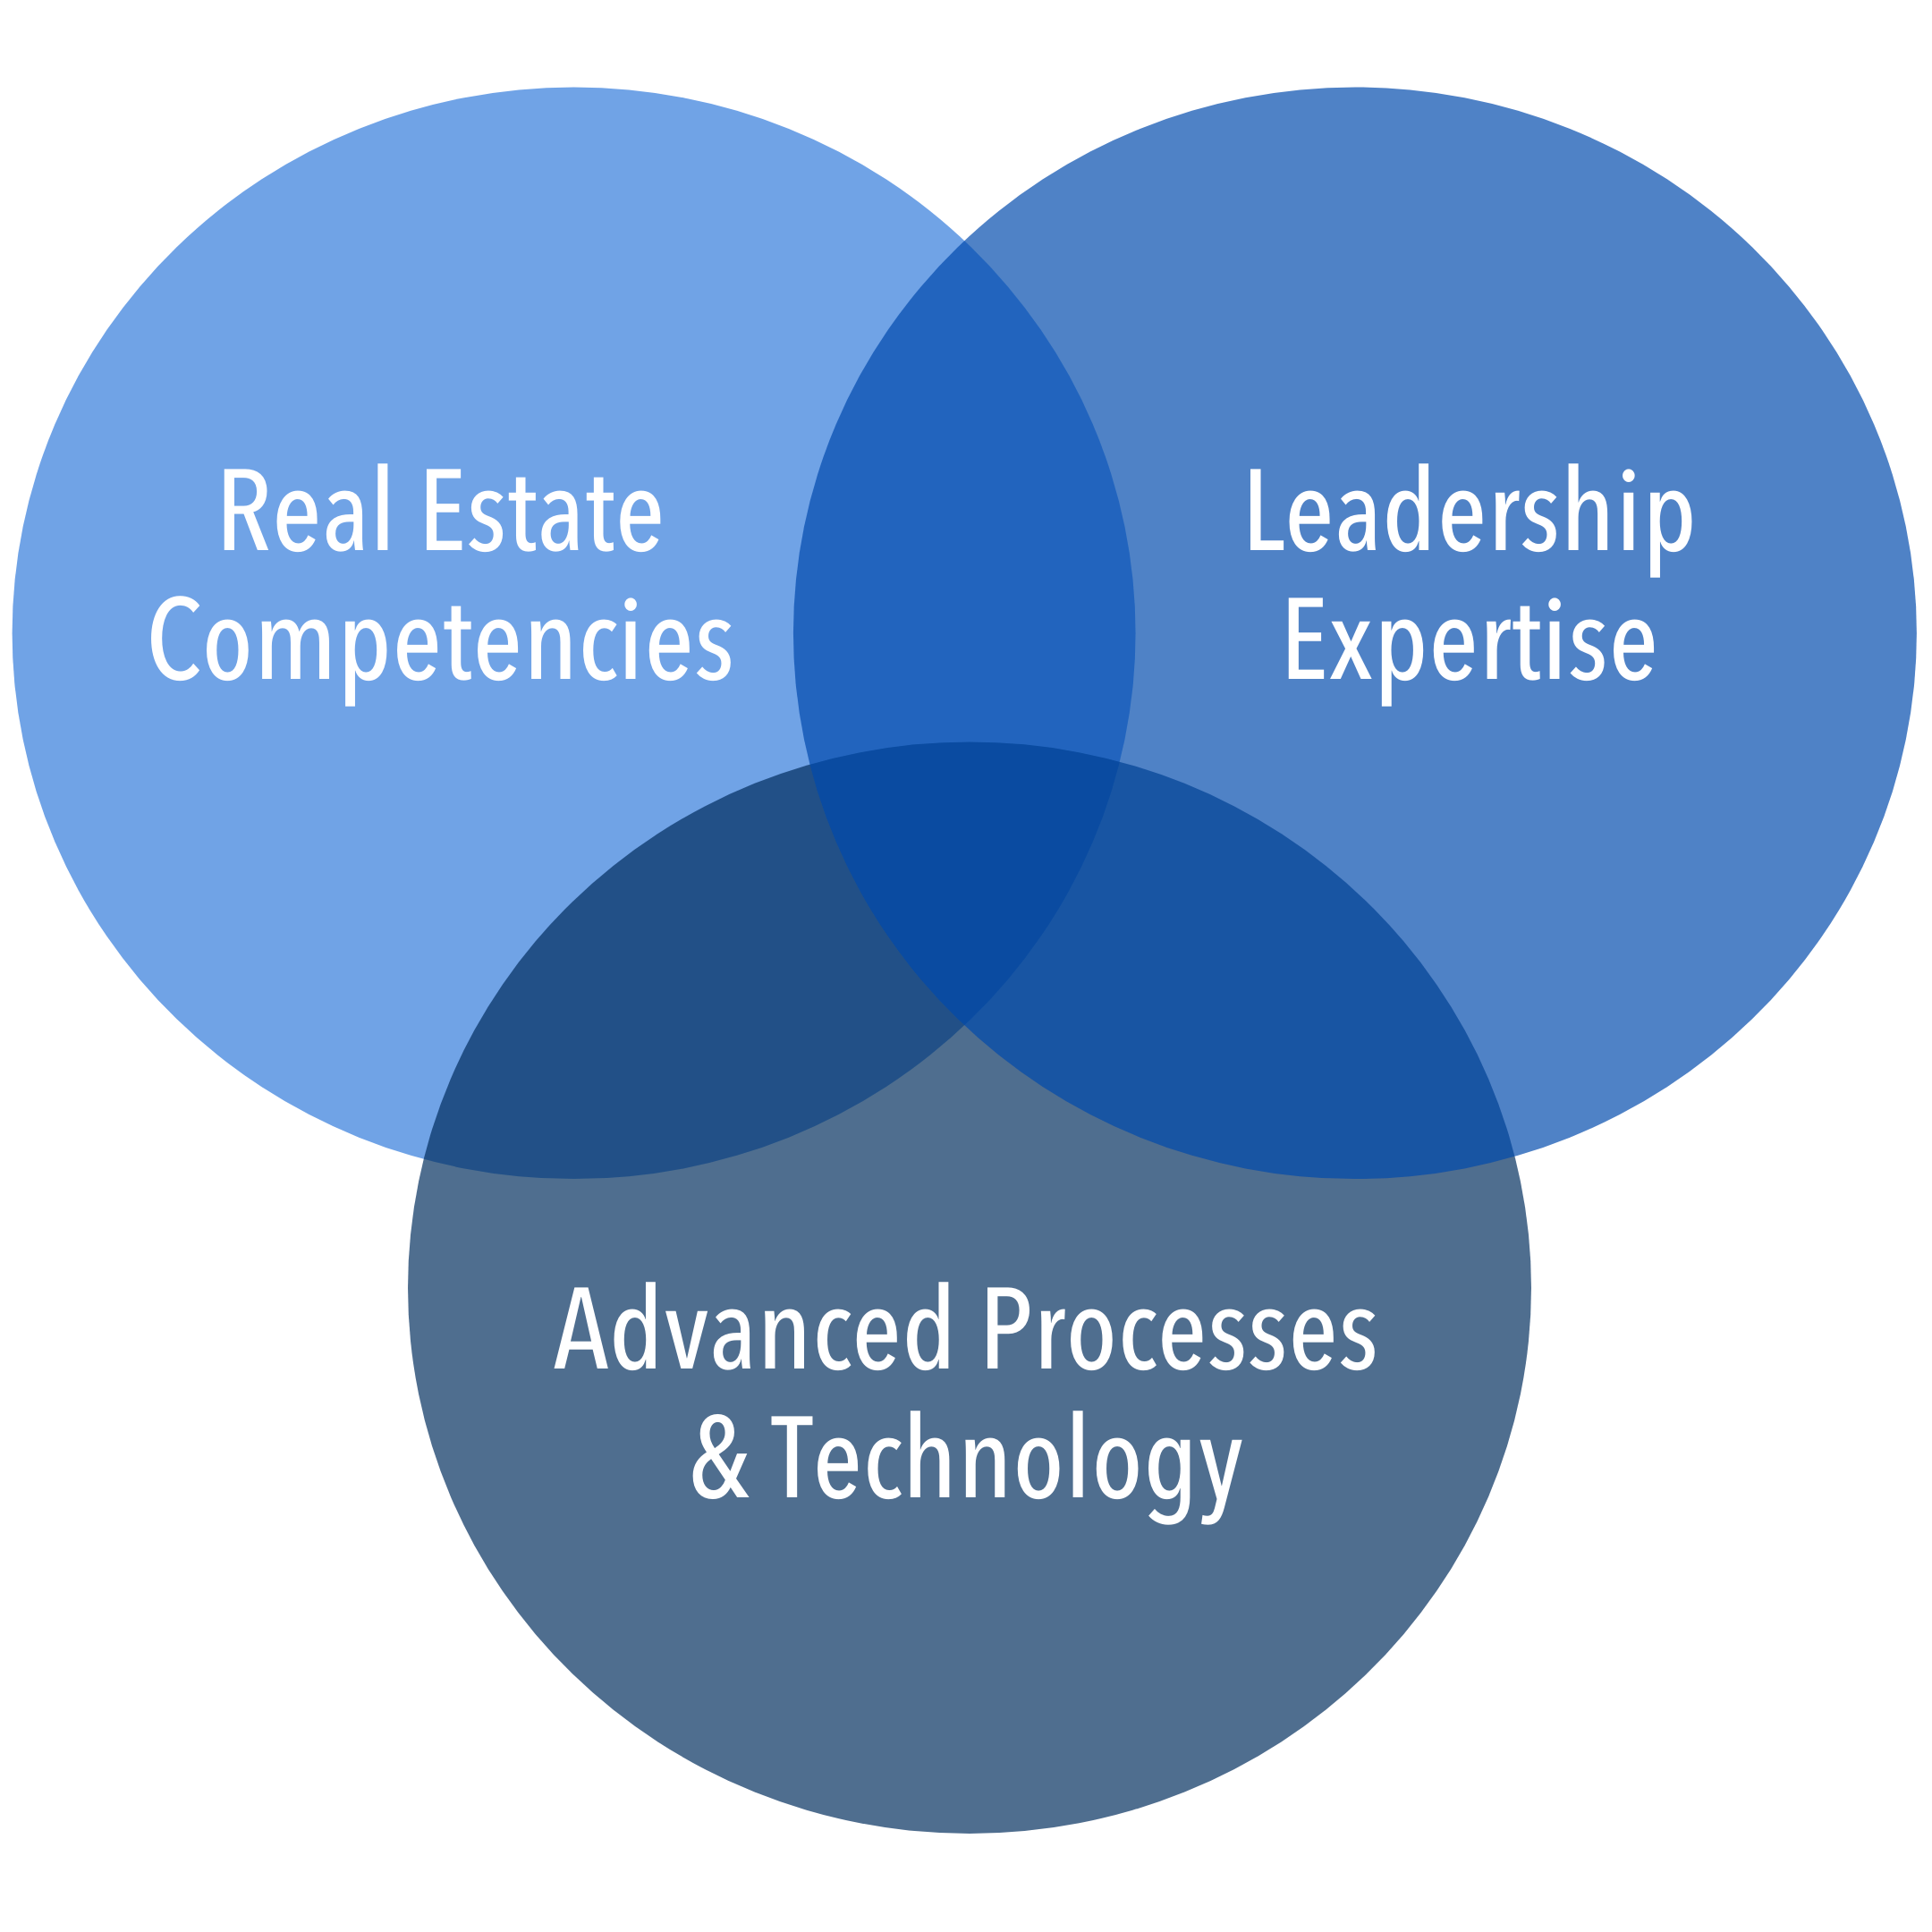 Real Estate Competencies